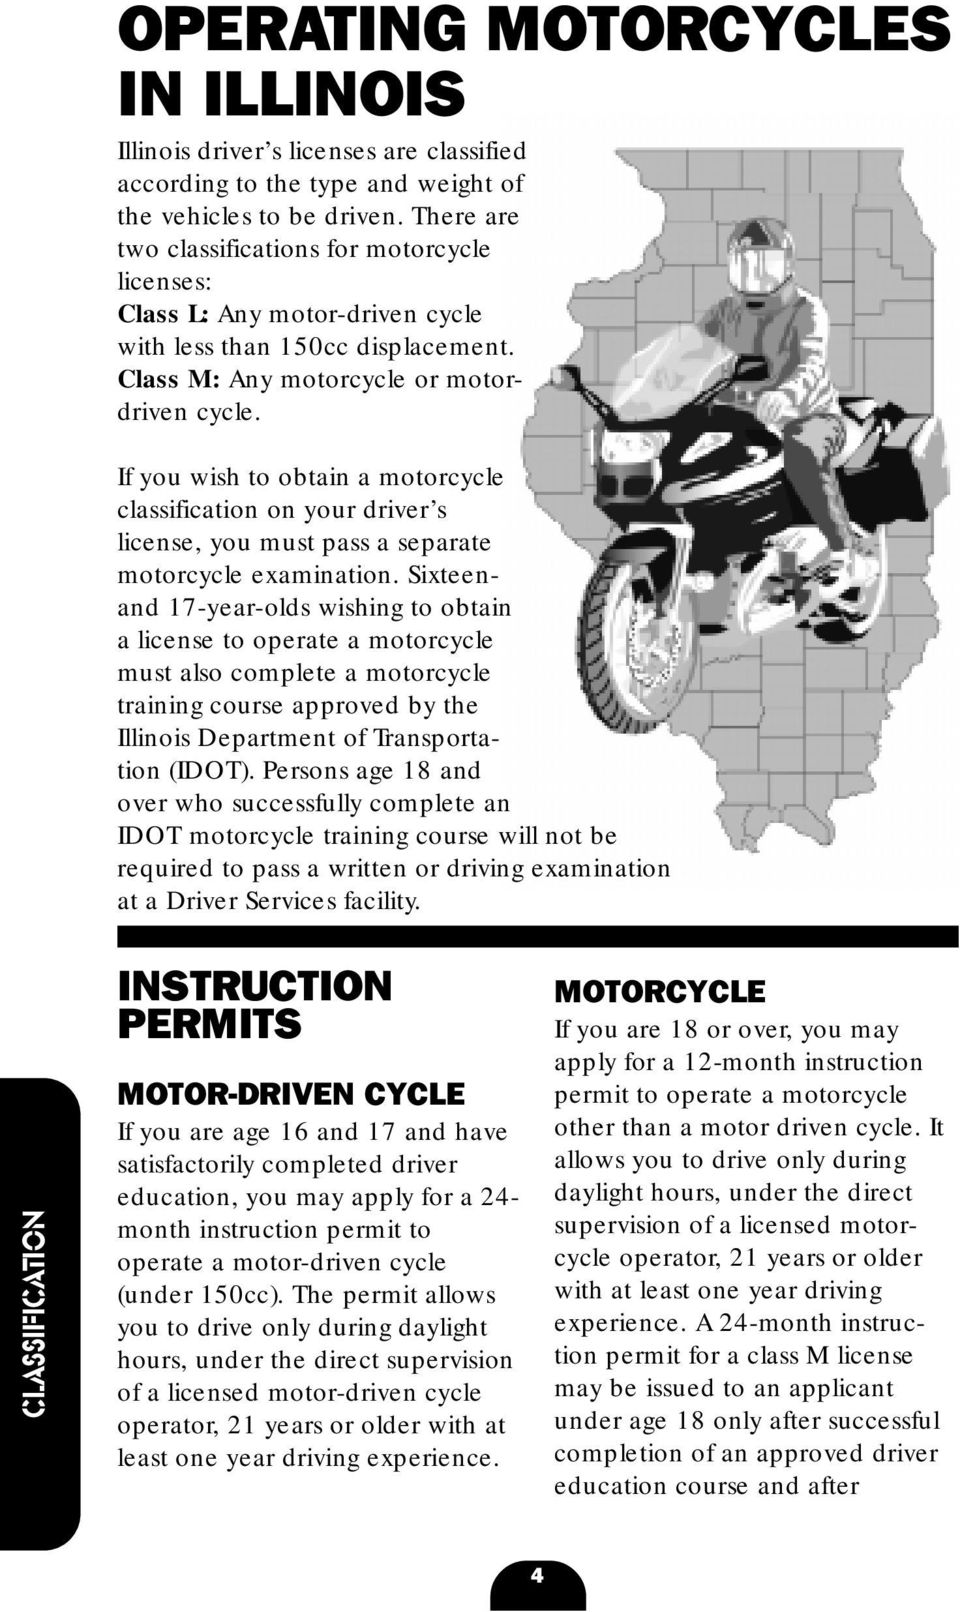 If you wish to obtain a motorcycle classification on your driver s license, you must pass a separate motorcycle examination.